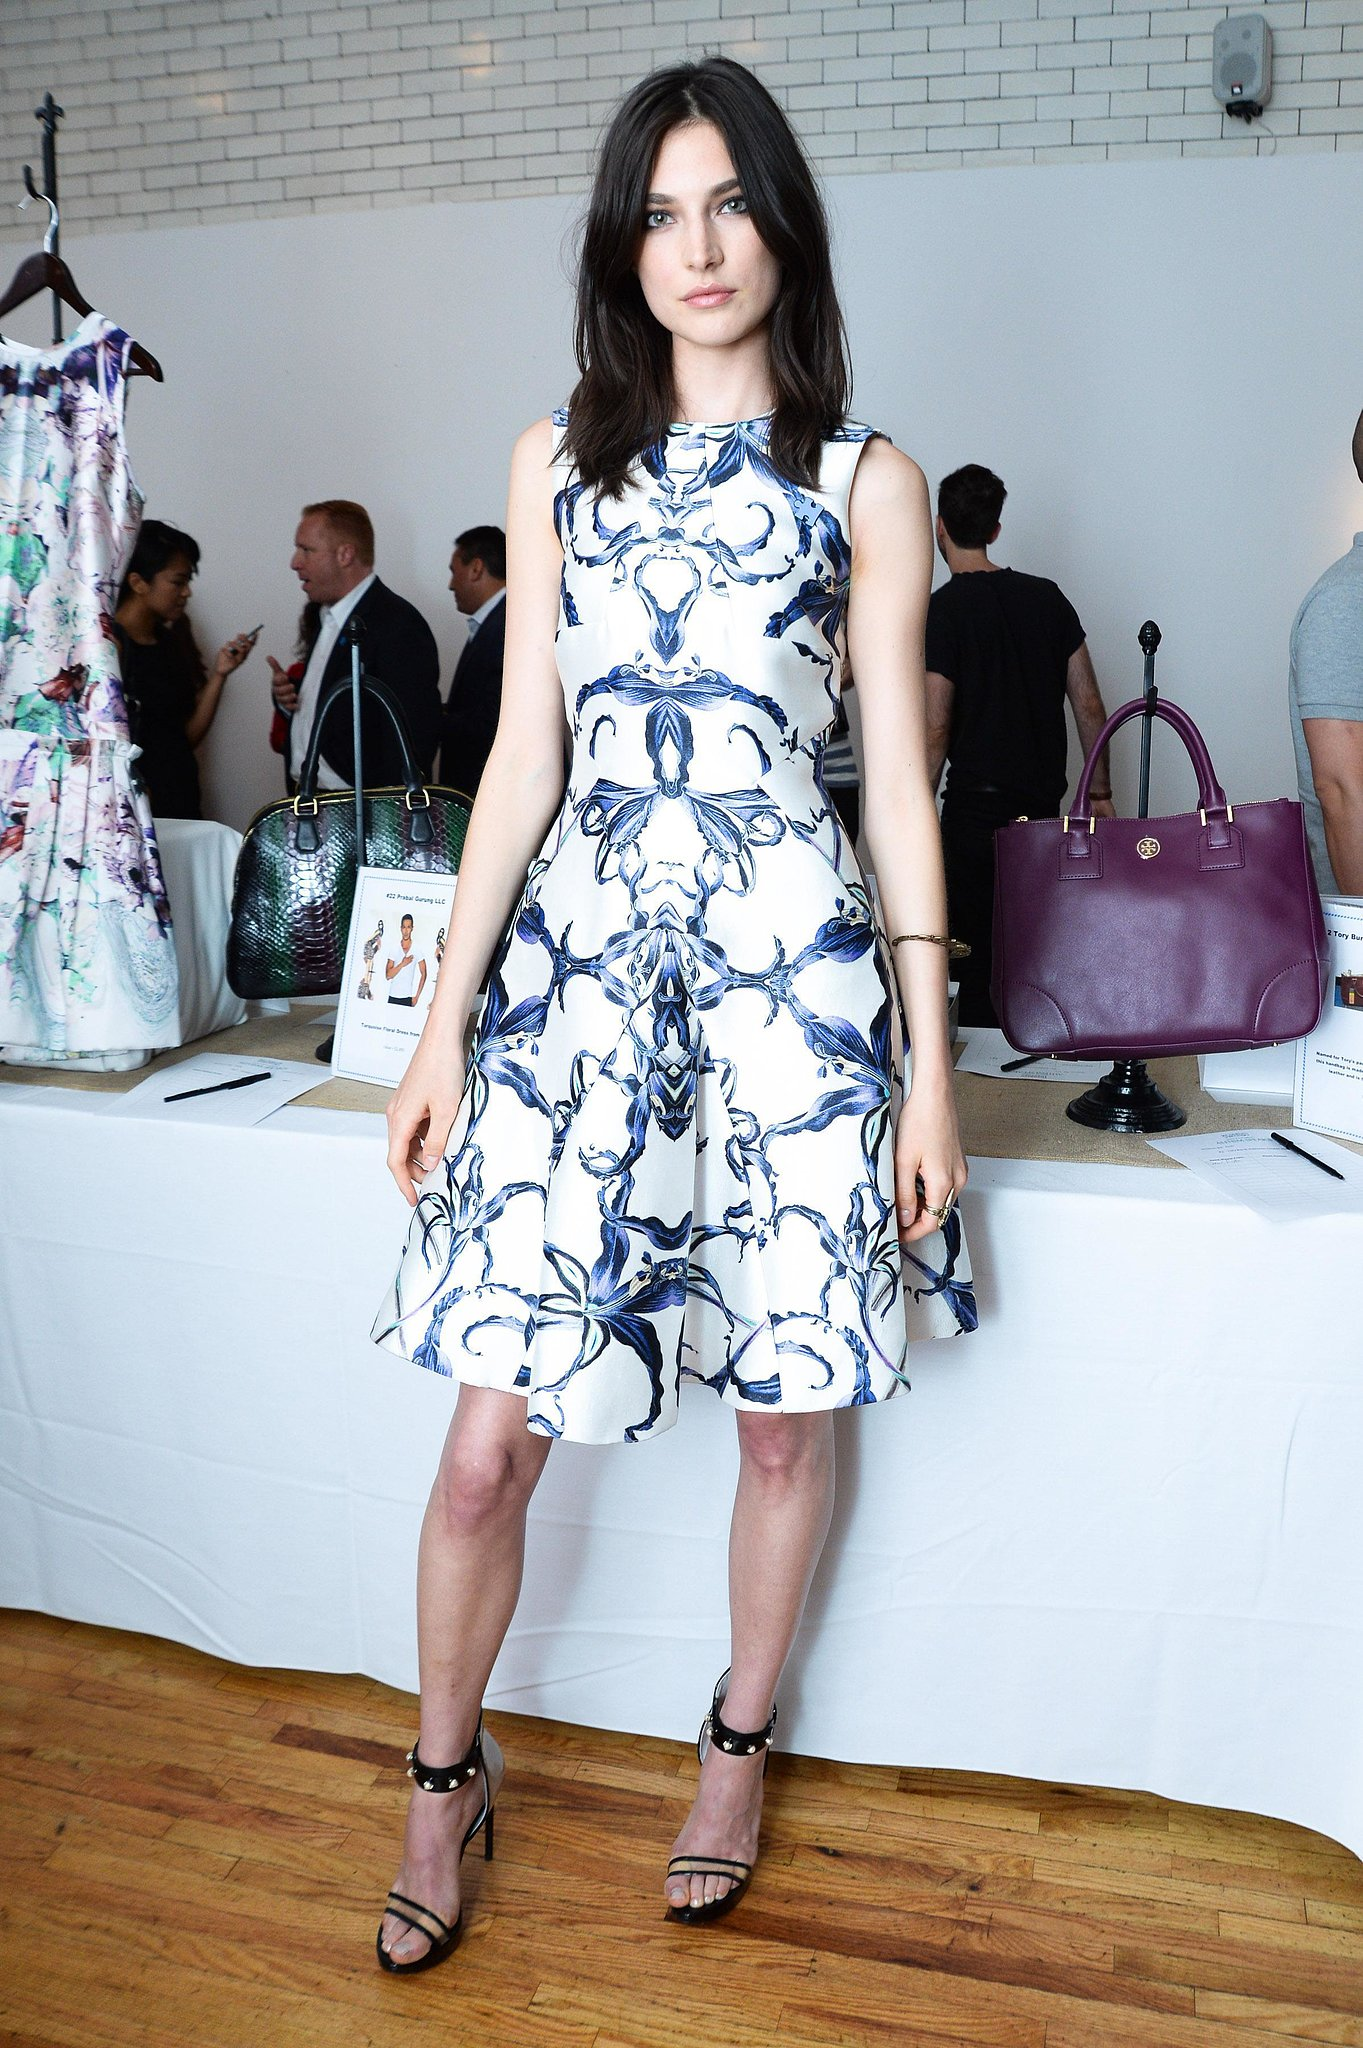 Jacquelyn Jablonski at an event for Autism Spe